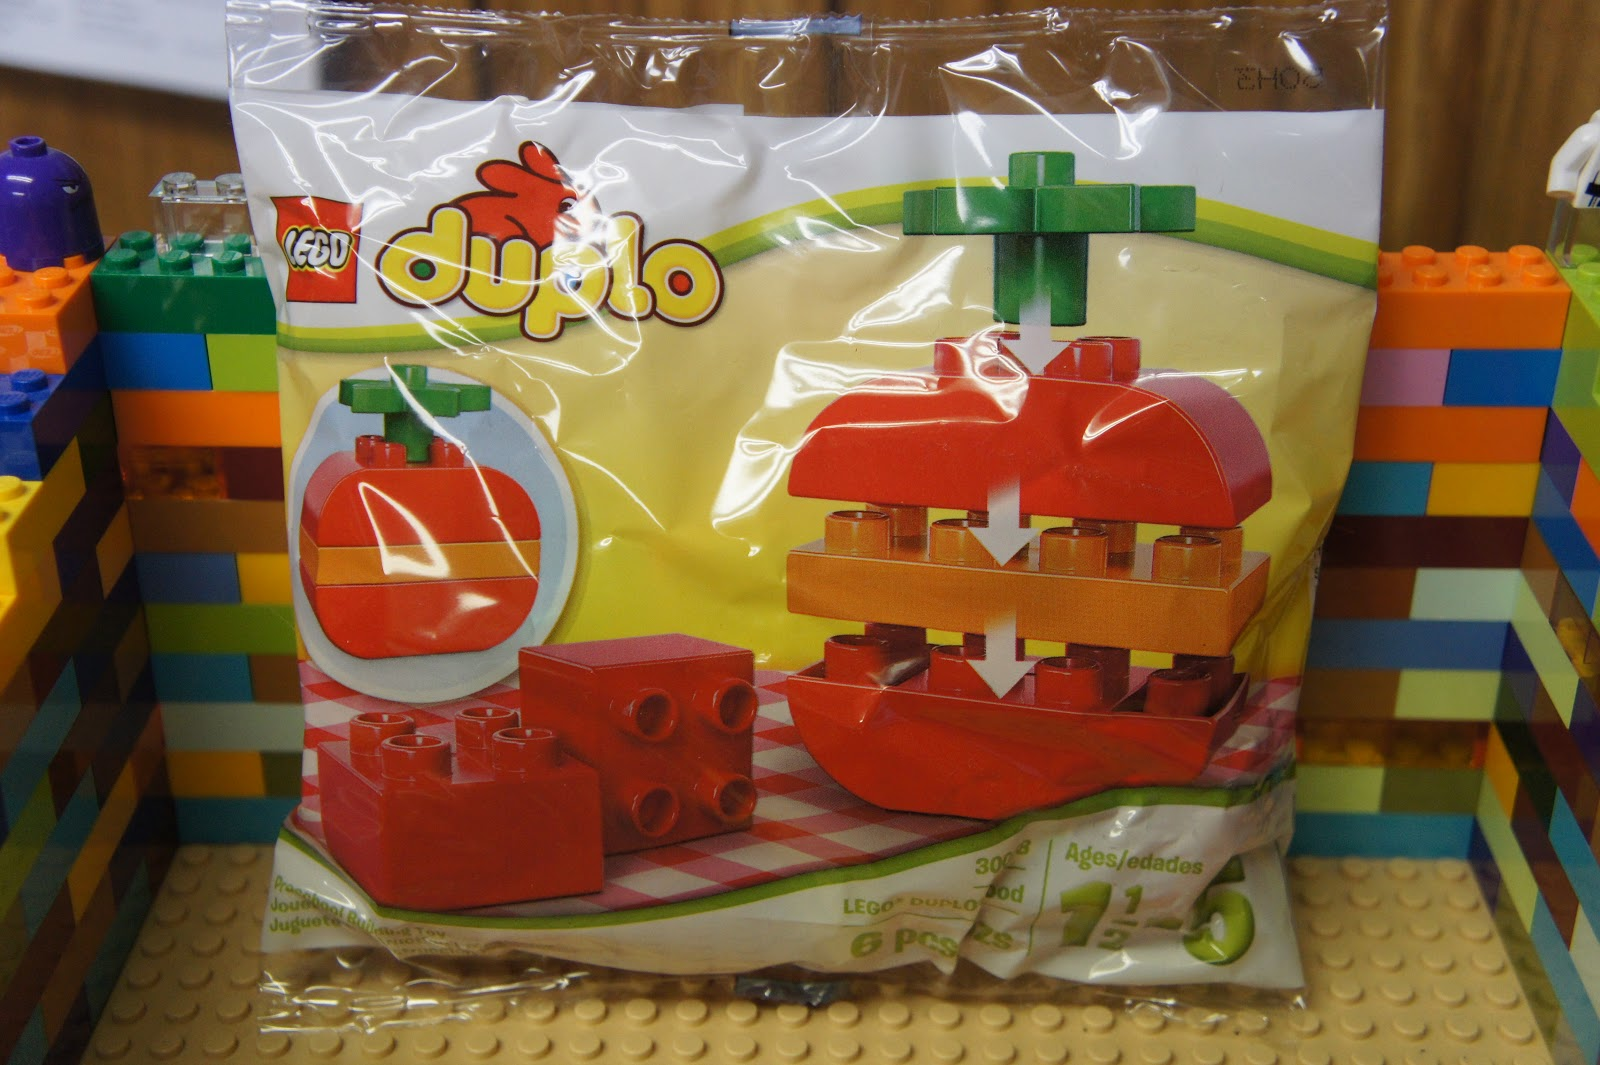 Lego Toy Food : Lego duplo apple food preschool building toy polybag